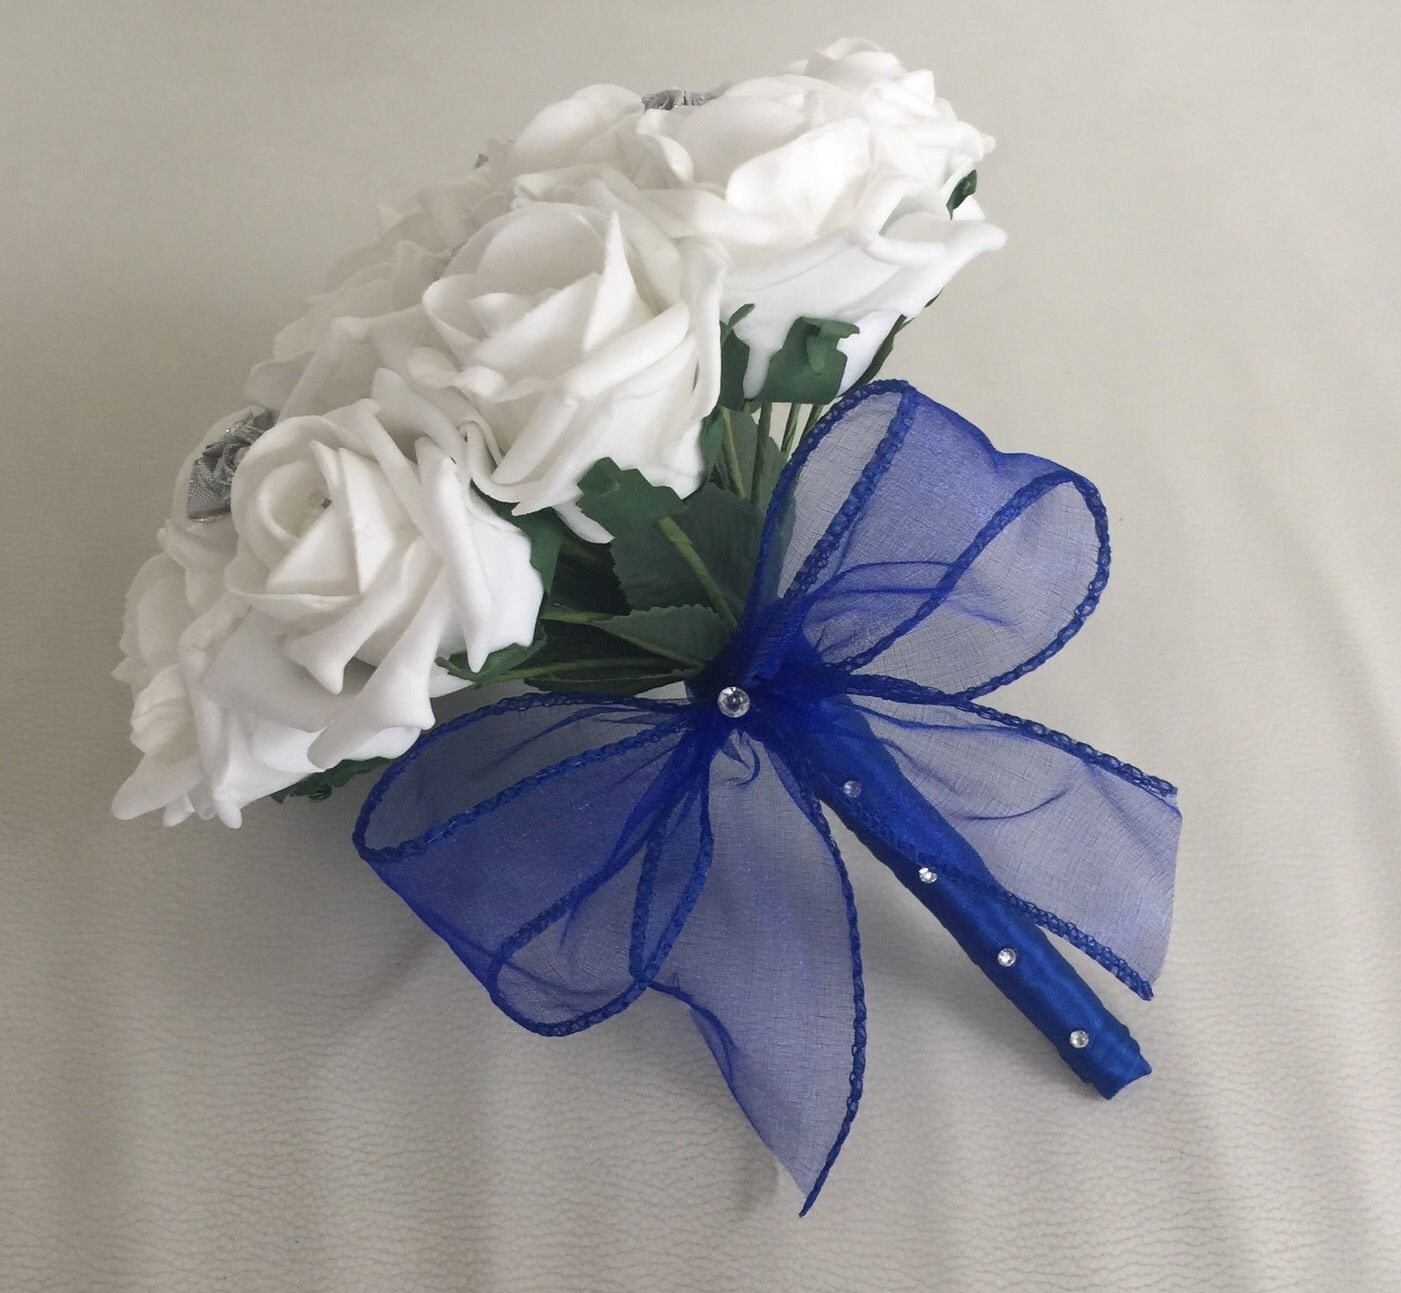 WHITE ROYAL BLUE SILVER FOAM ROSE WEDDING FLOWERS BOUQUET BRIDESMAID ...